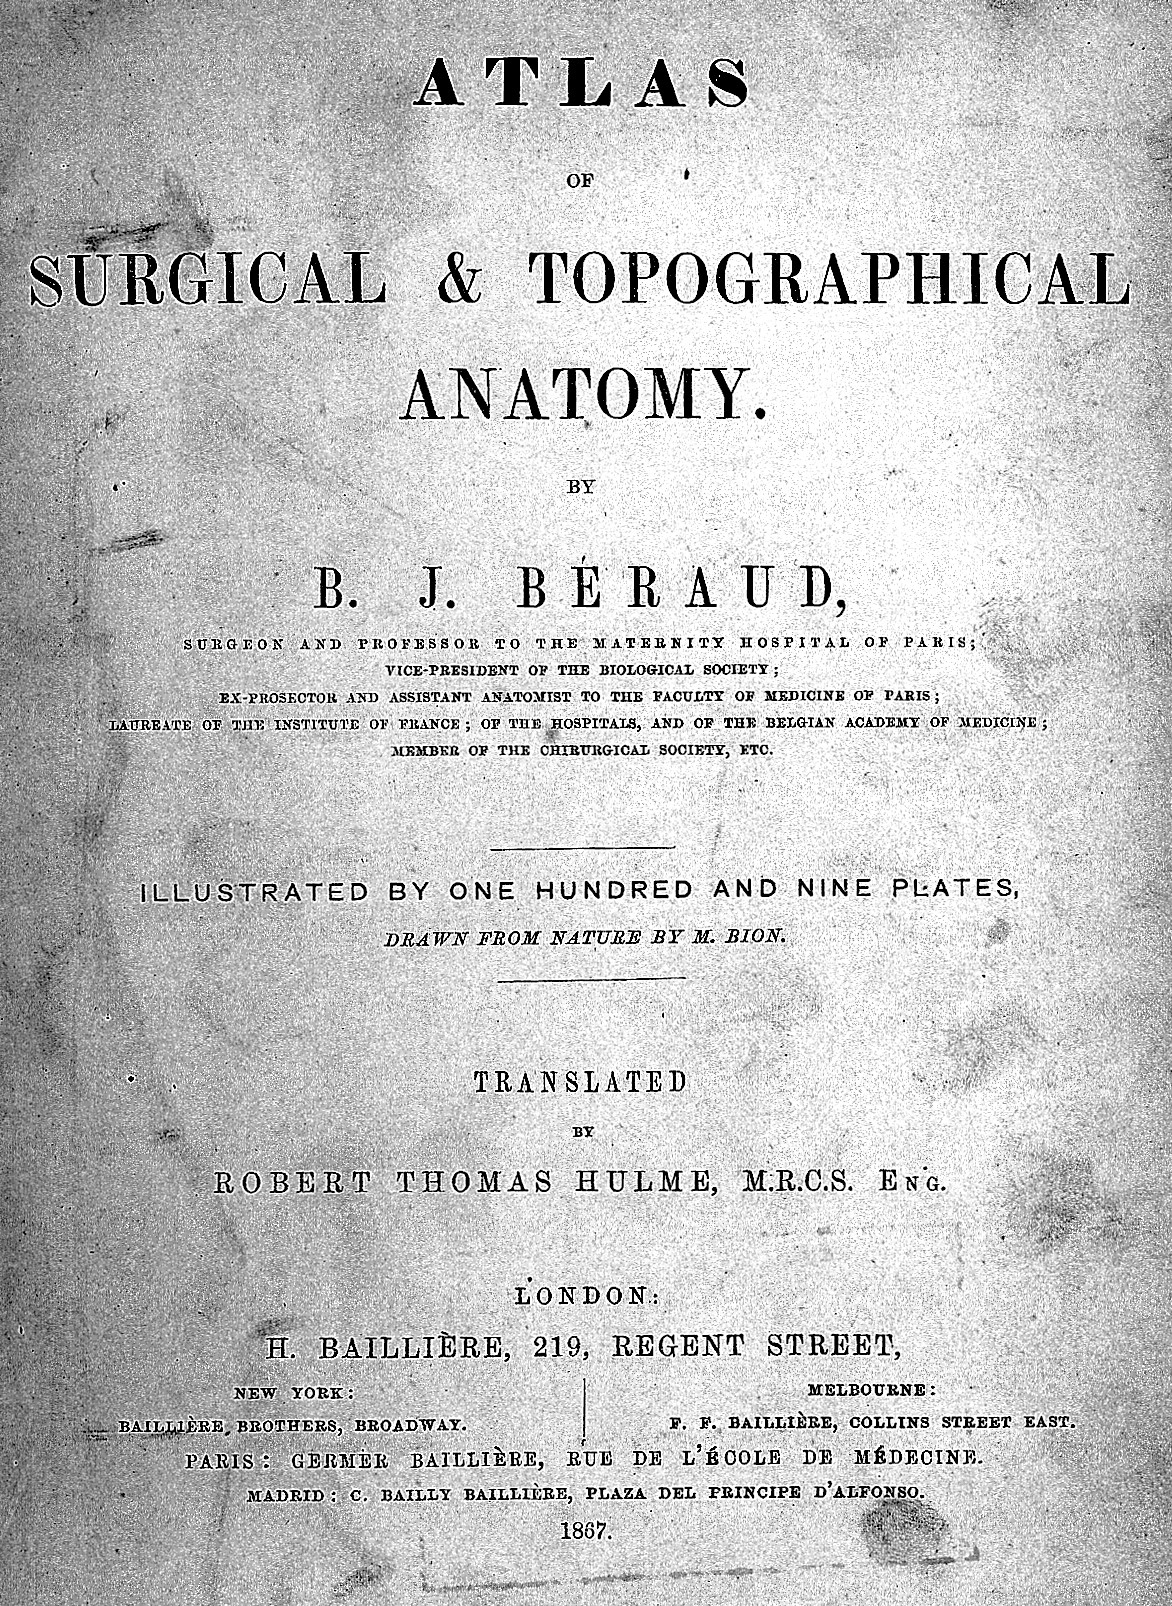 Fileb J Beraud Atlas Of Surgical And Topographical Anatomy